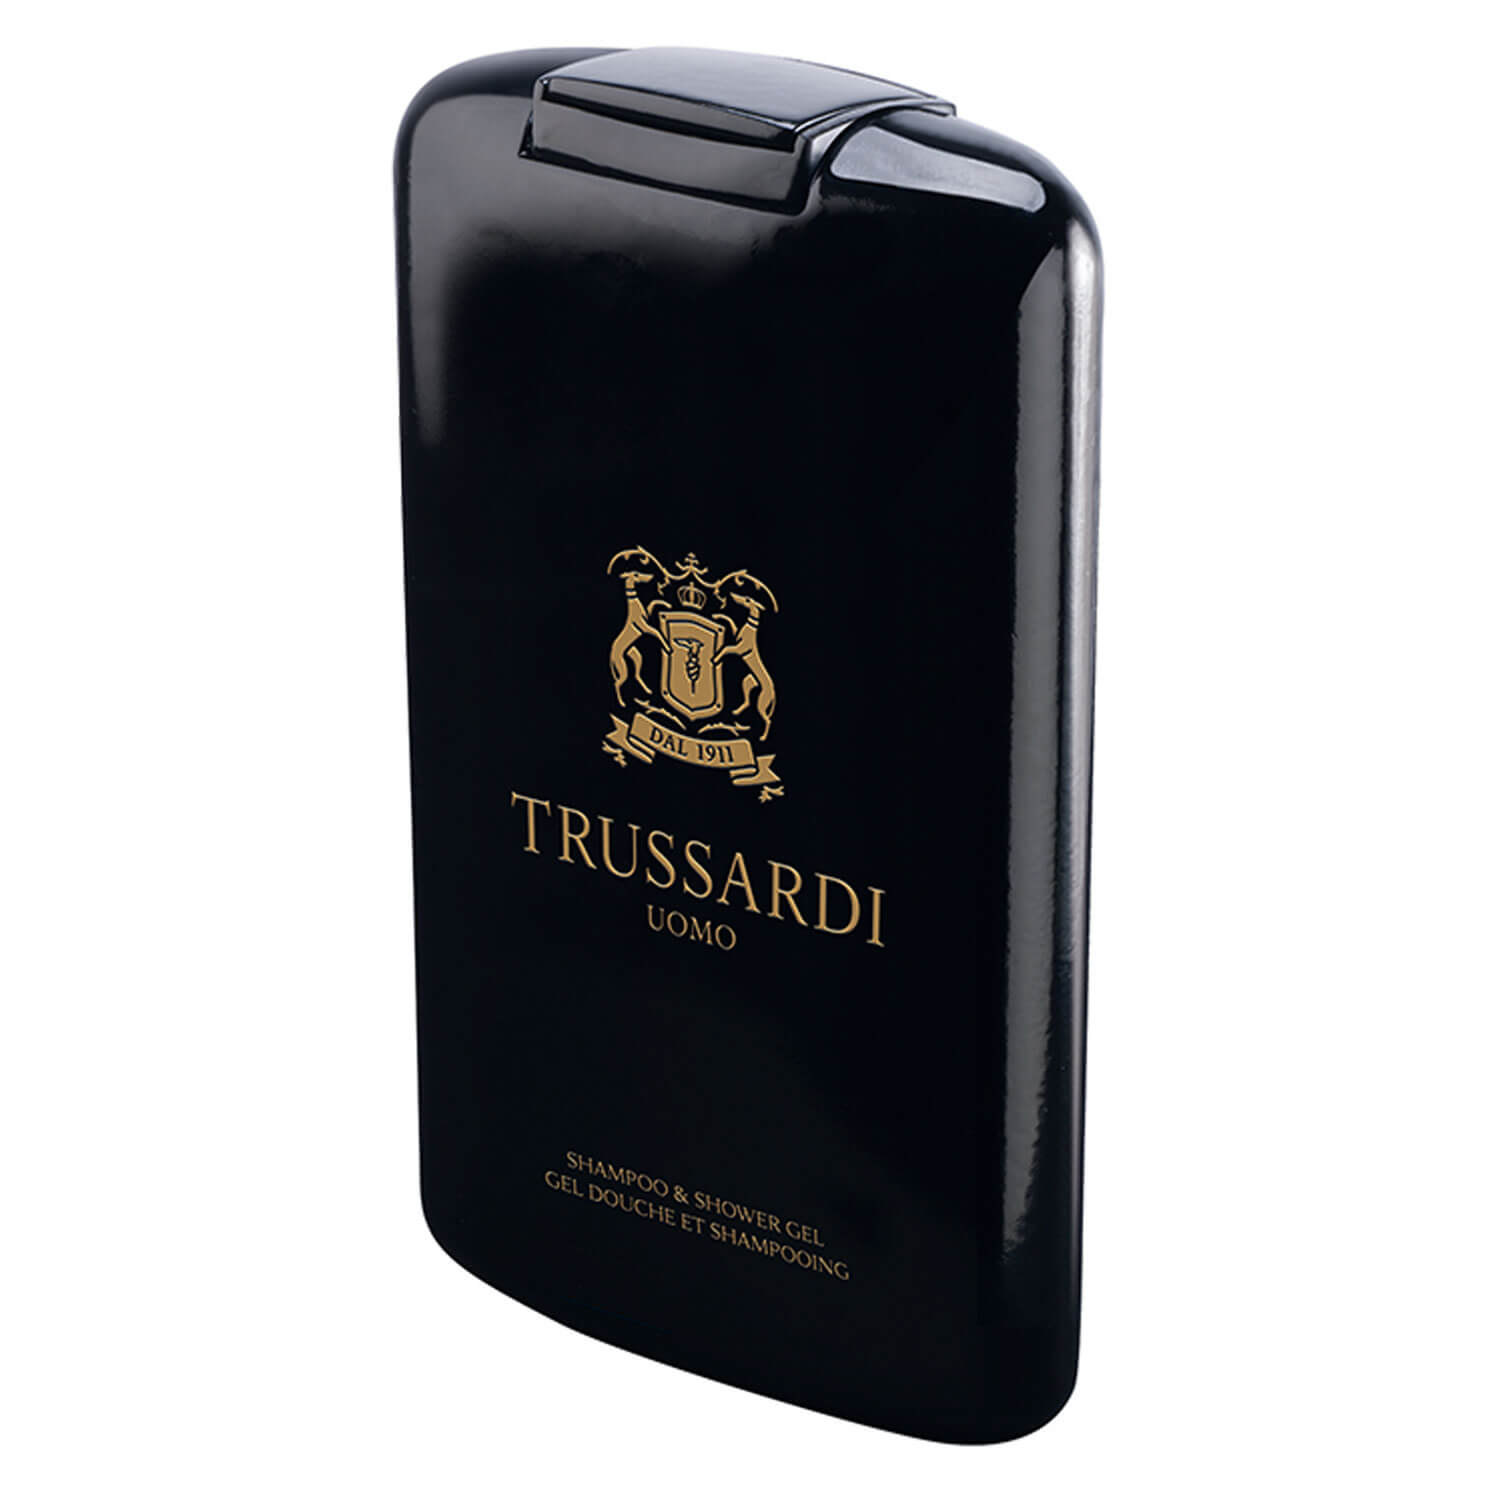 Trussardi Uomo - Shampoo & Shower Gel